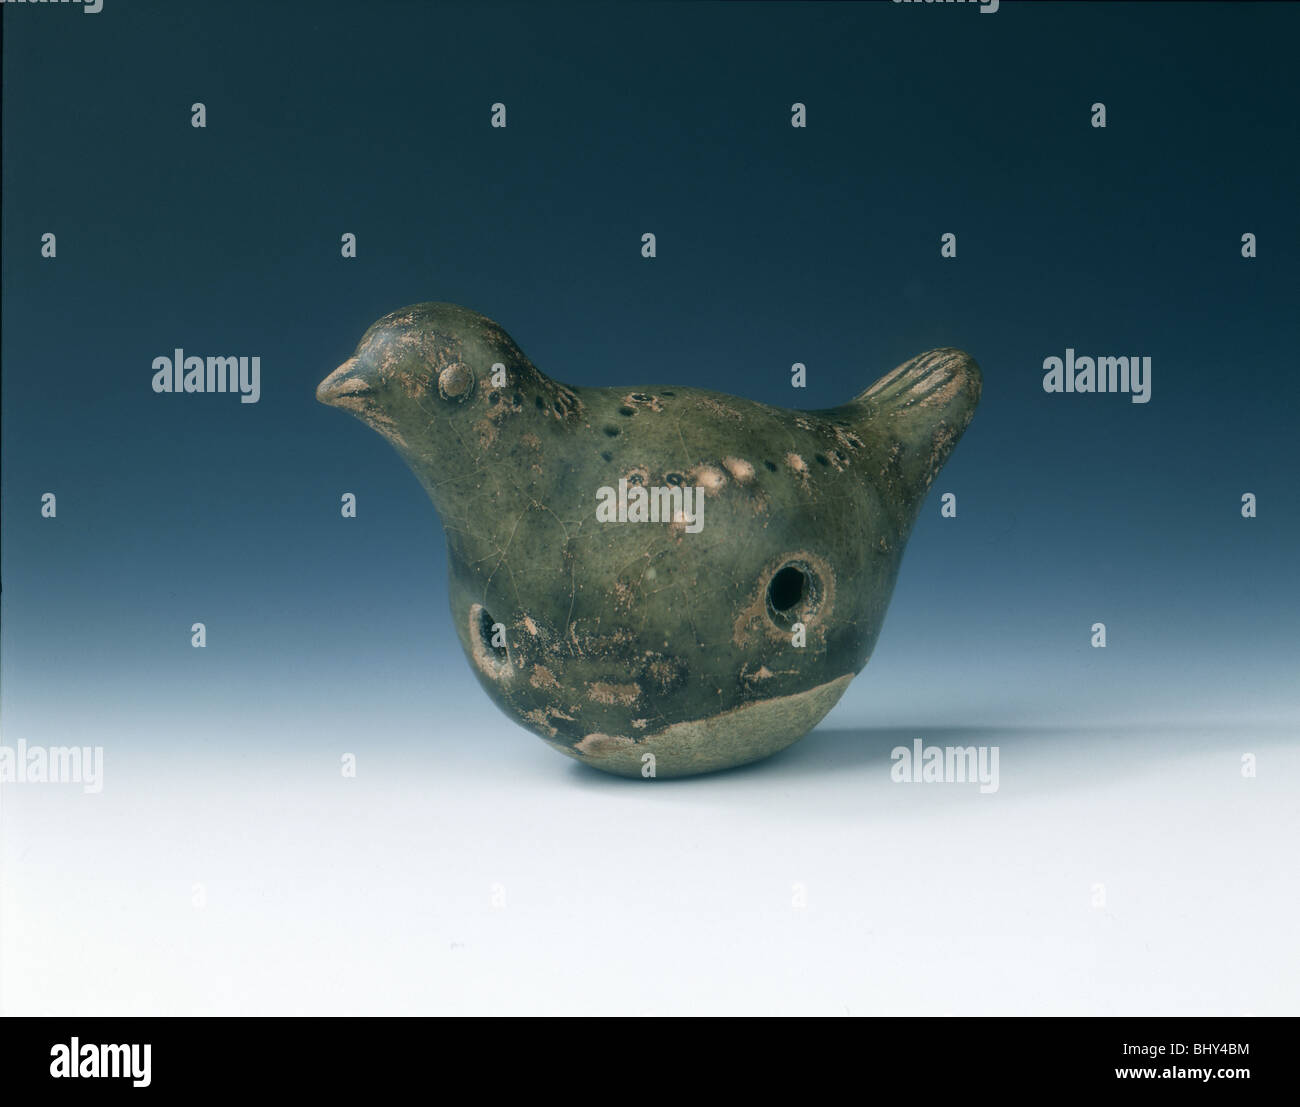 Bird whistle, Tang/Five dynasties, China, 8th-10th century. - Stock Image